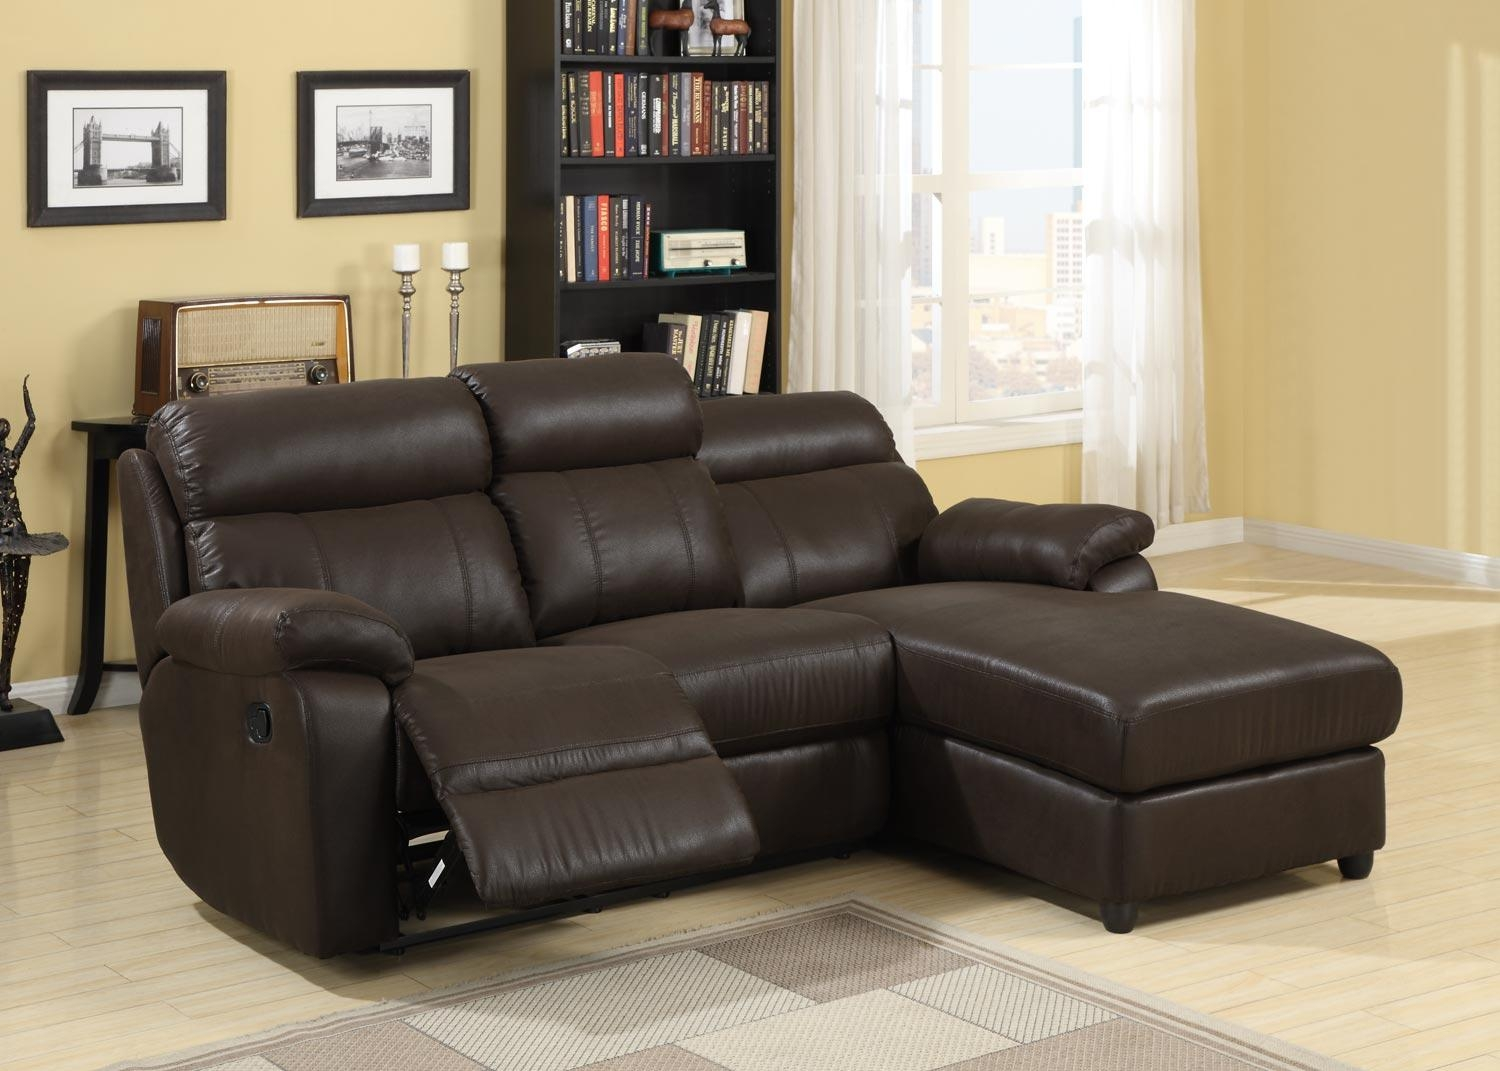 Homelegance Gaines Sectional Sofa – Brown – Bomber Jacket Inside Bomber Leather Sofas (View 8 of 20)